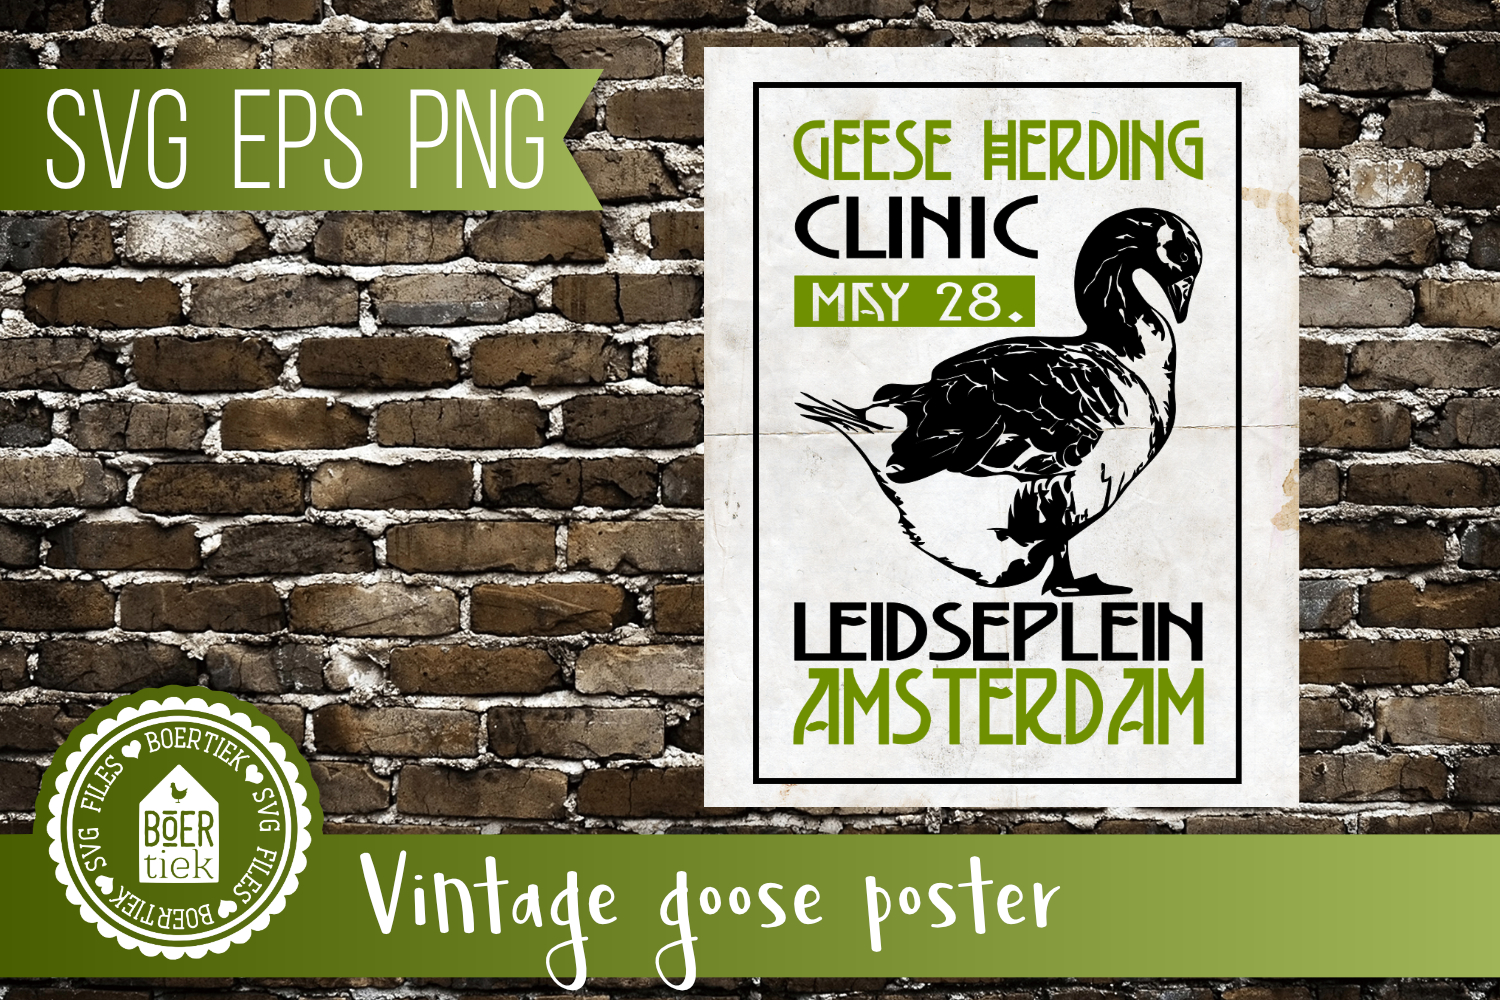 Geese herding clinic, vintage look, SVG file example image 1